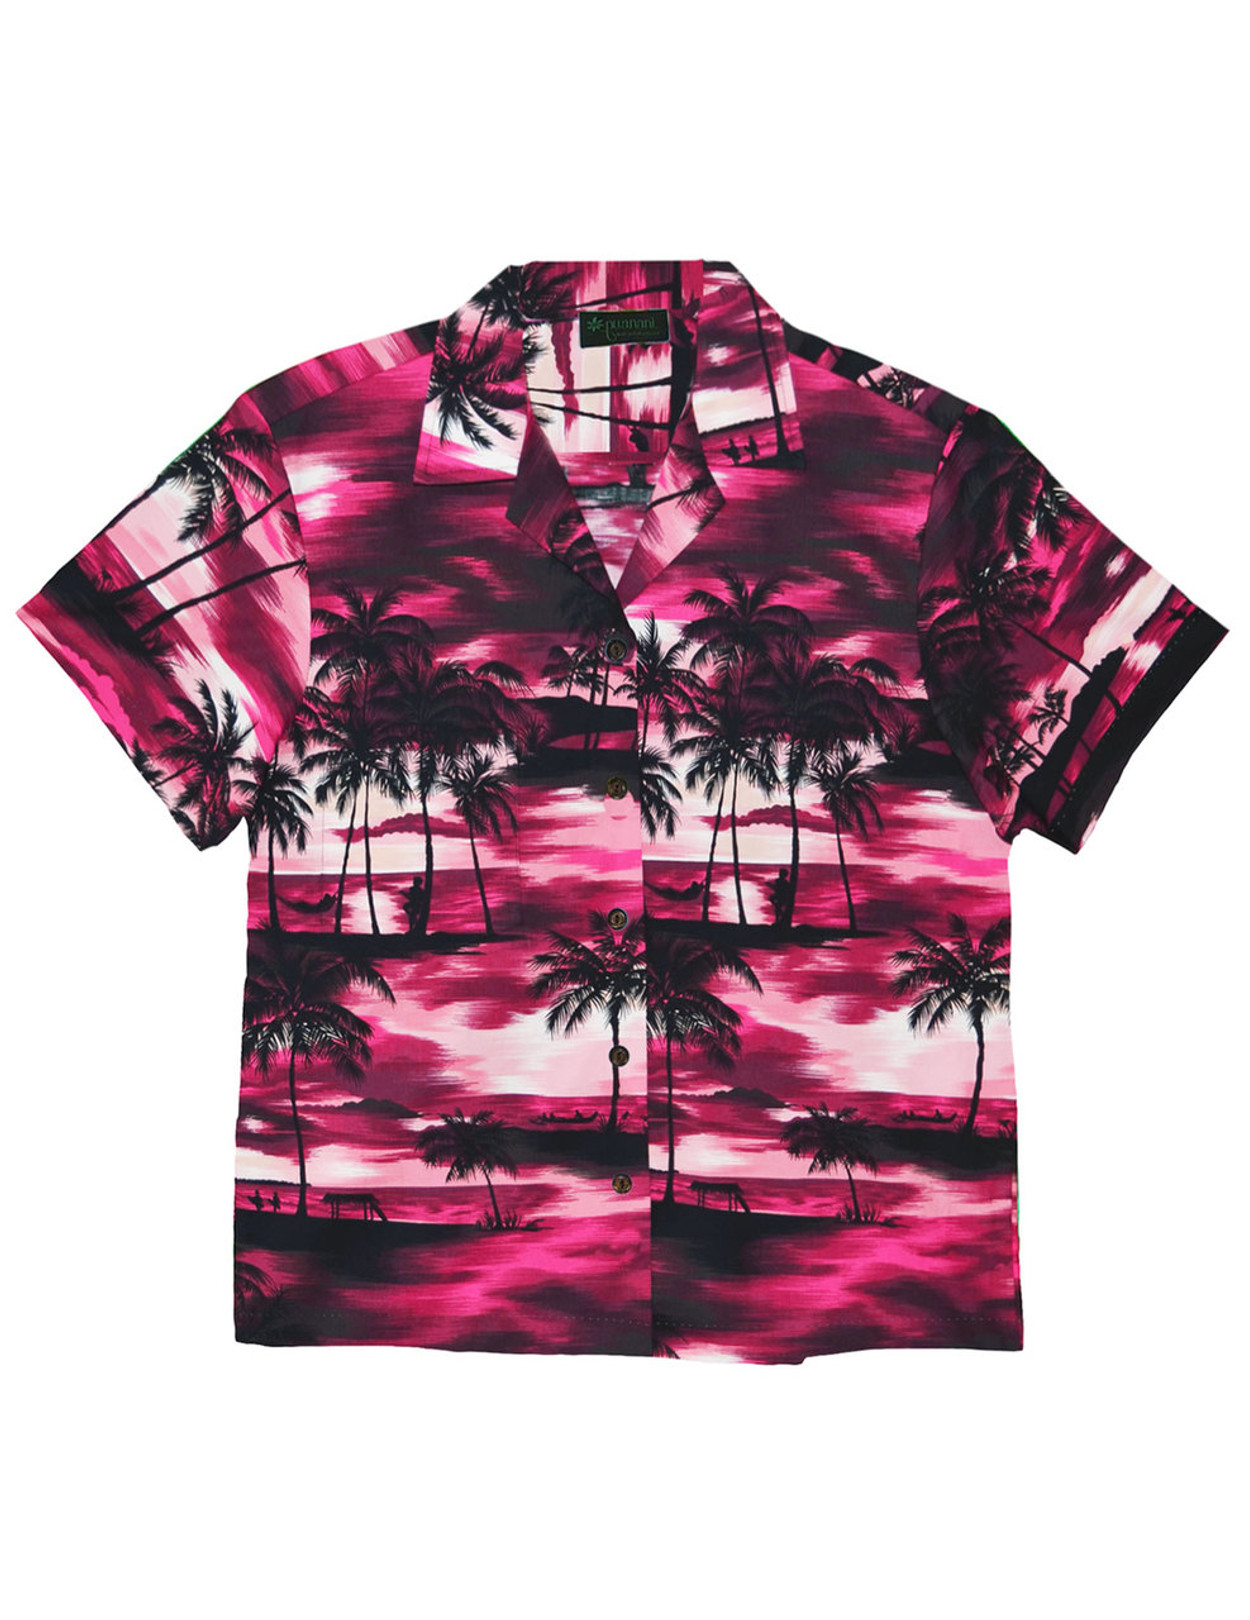 b67891b8a41a52 Island Sunrise Women Camp Shirt 100% Cotton Fabric Short Sleeves  Comfortable Fit Design Coconut Shell